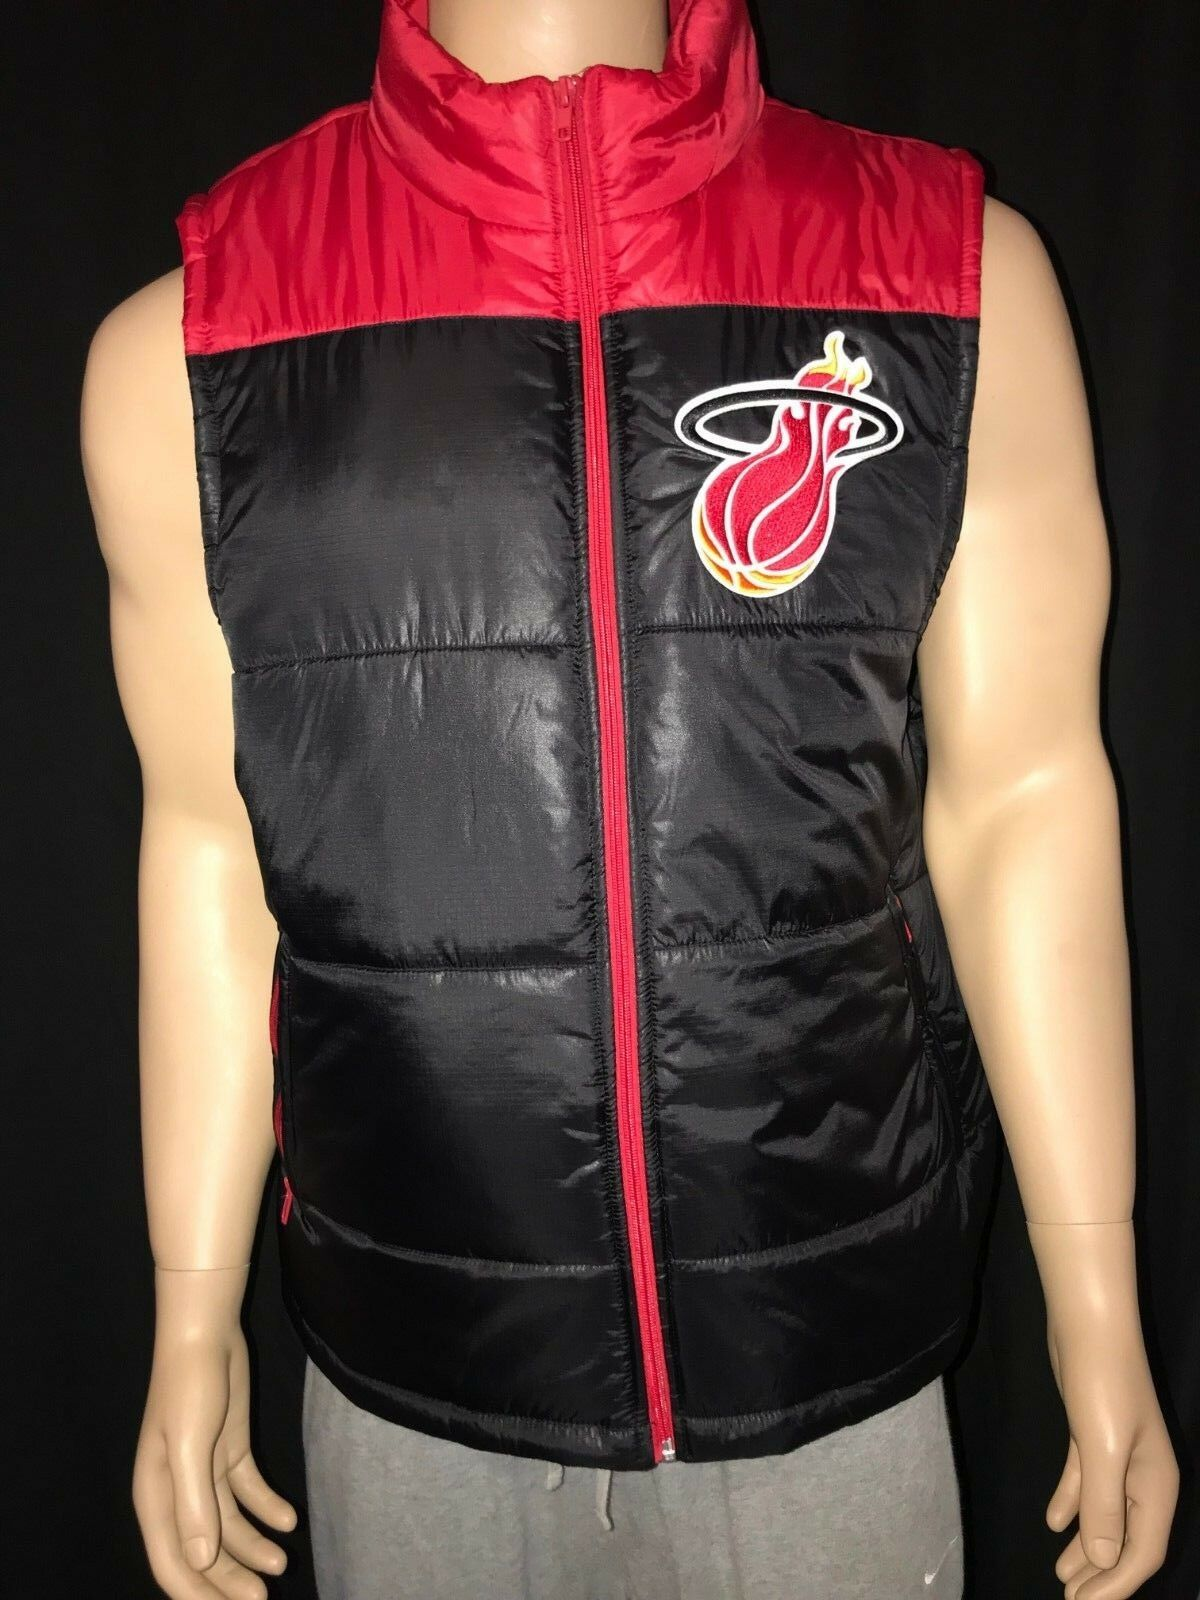 Mitchell and Ness Miami Heat NBA Winning Team Vest XL XXL